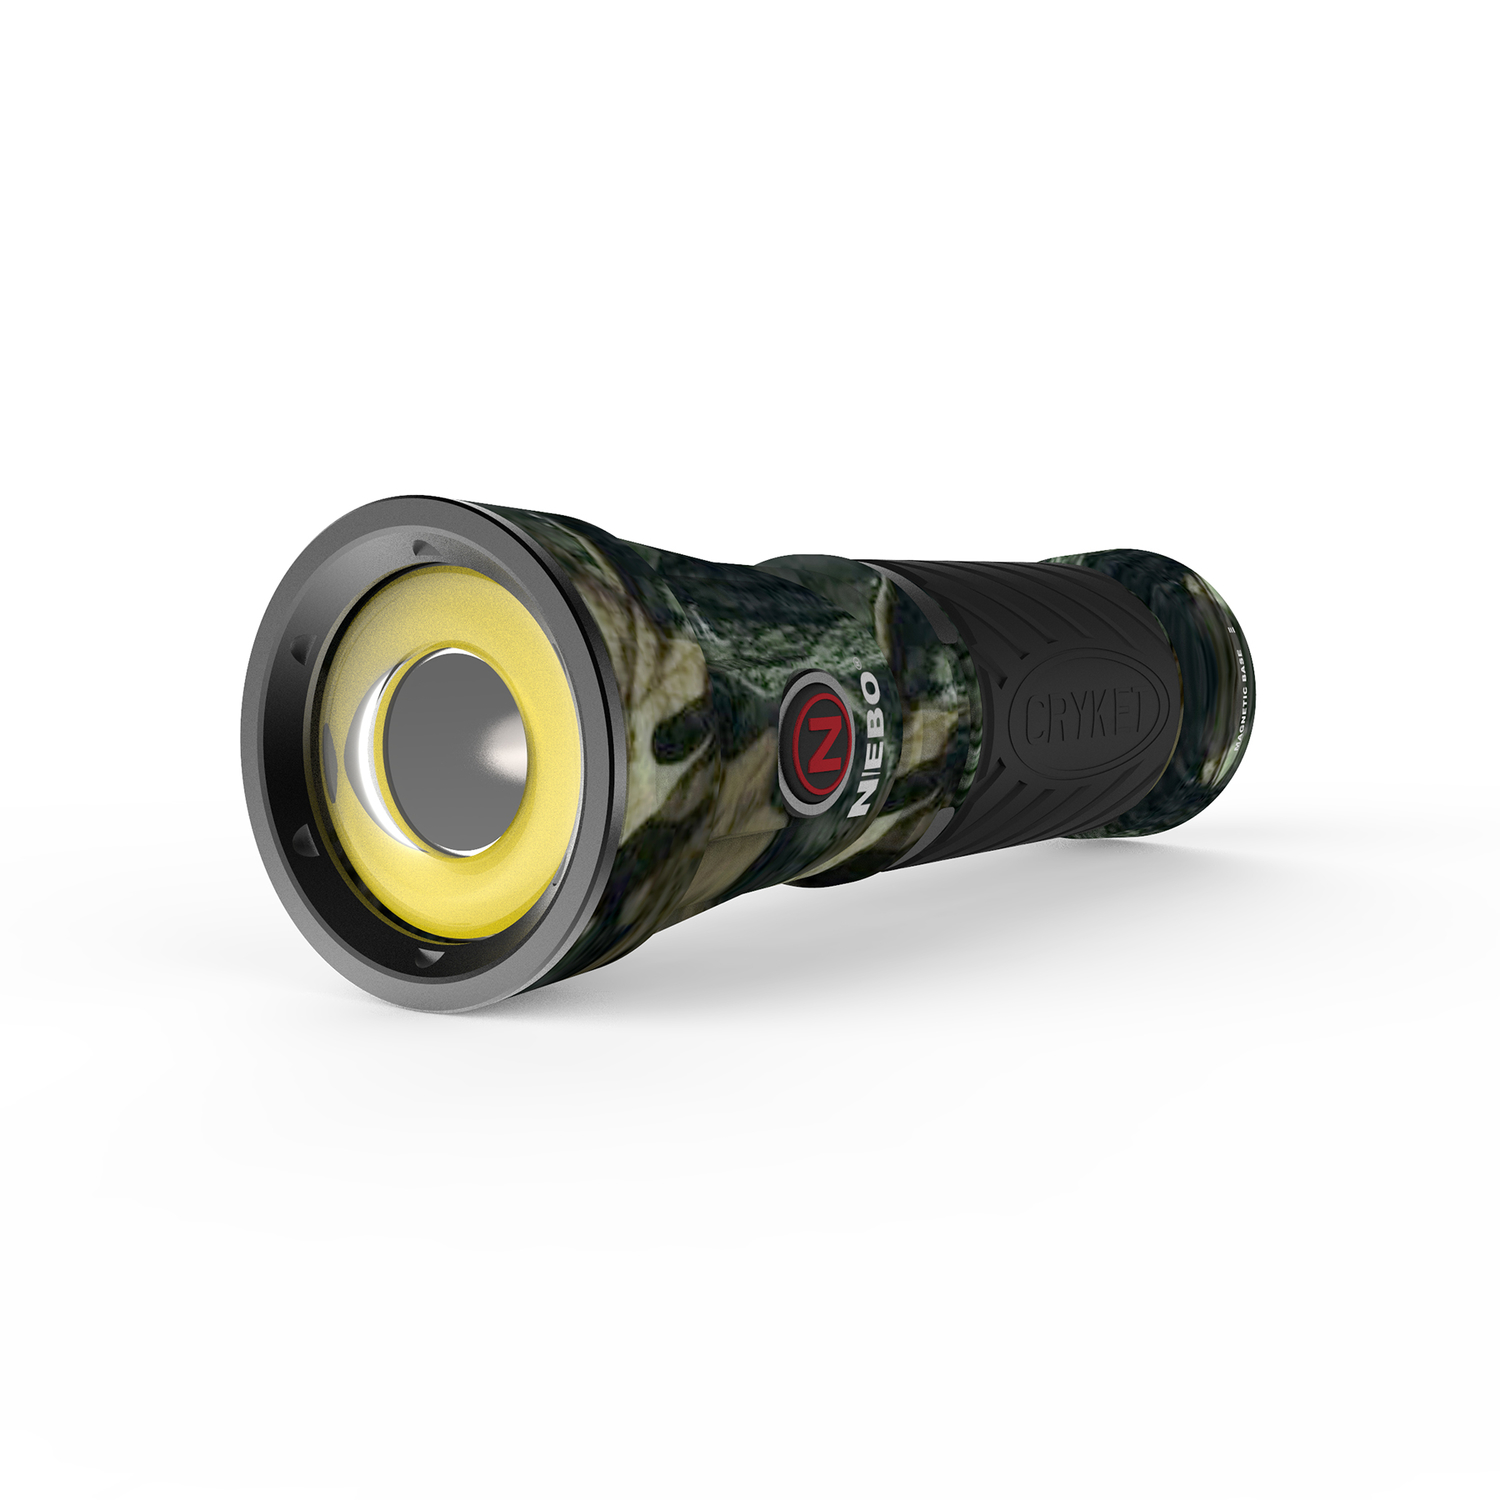 Nebo  Cryket  250 lumens Camouflage  LED  COB Flashlight  AAA